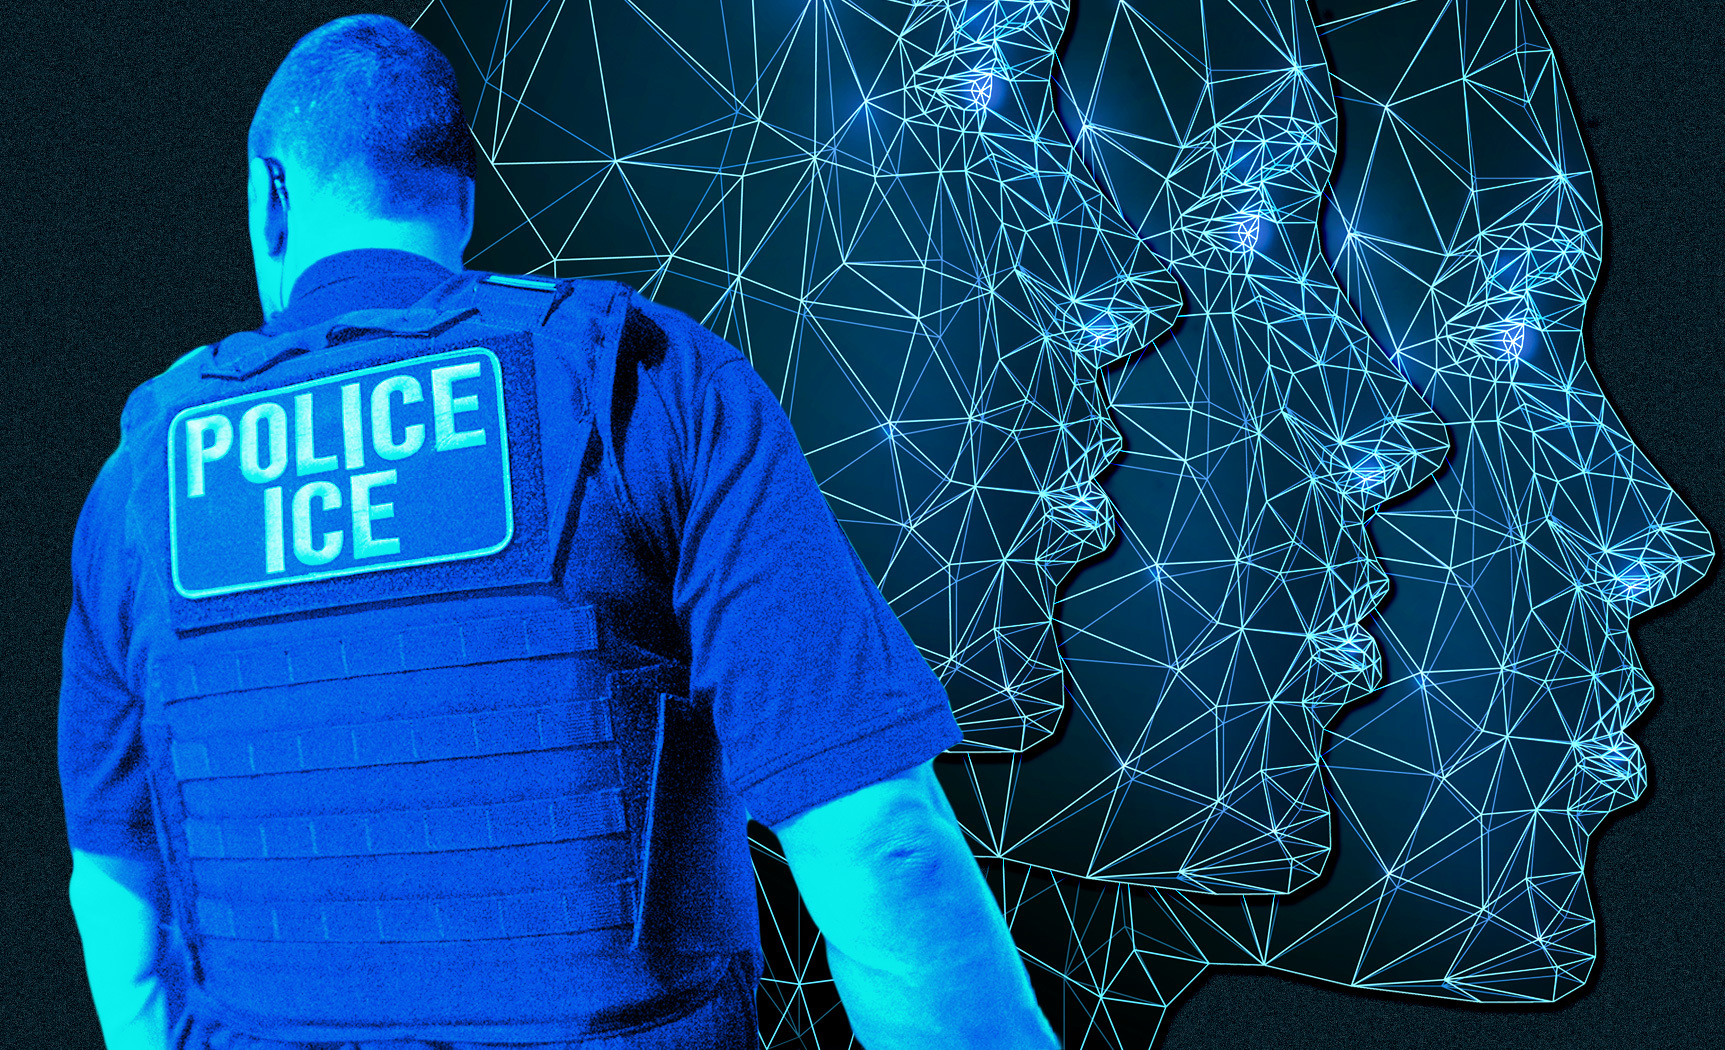 Amazon Pushes ICE to Buy Its Face Recognition Surveillance Tech